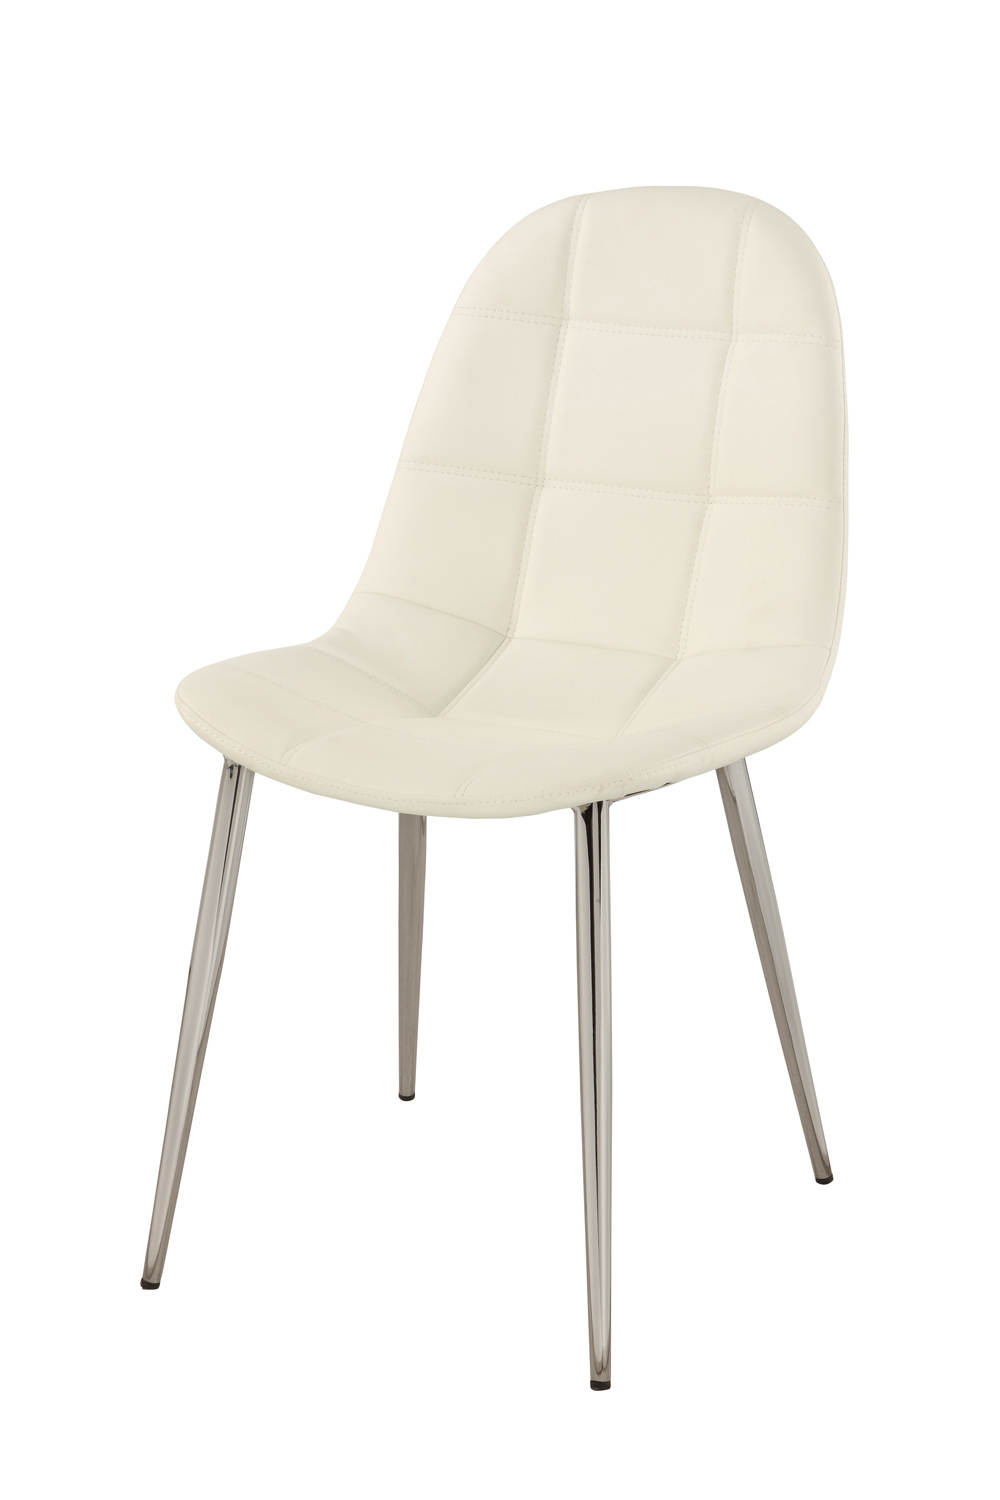 Chintaly Imports Donna Upholstered Back Side Chair - Chrome